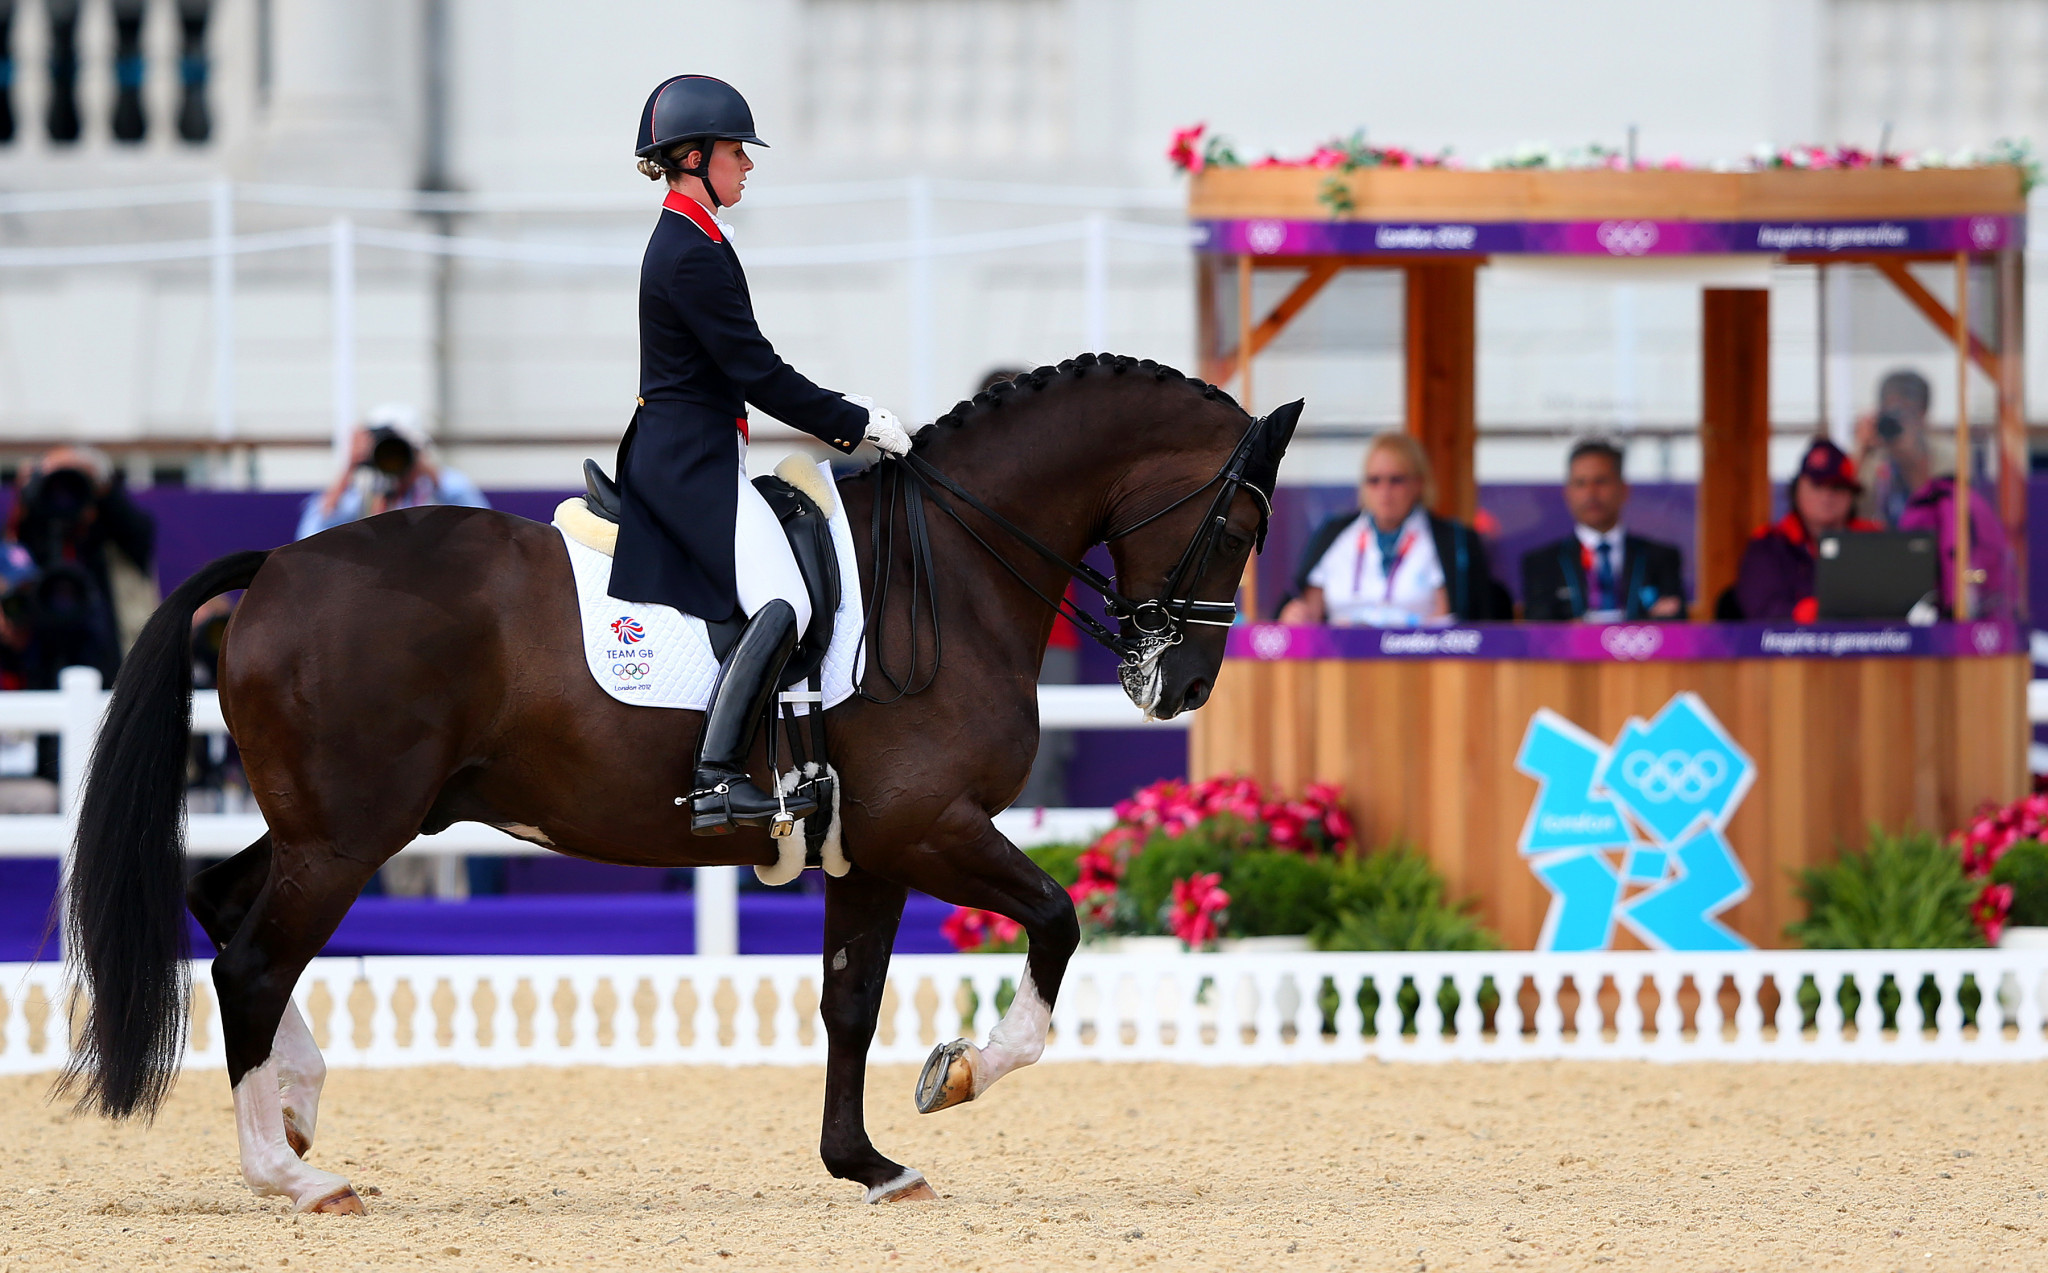 Bronze statue to mark career of triple Olympic gold medallist Valegro to be erected